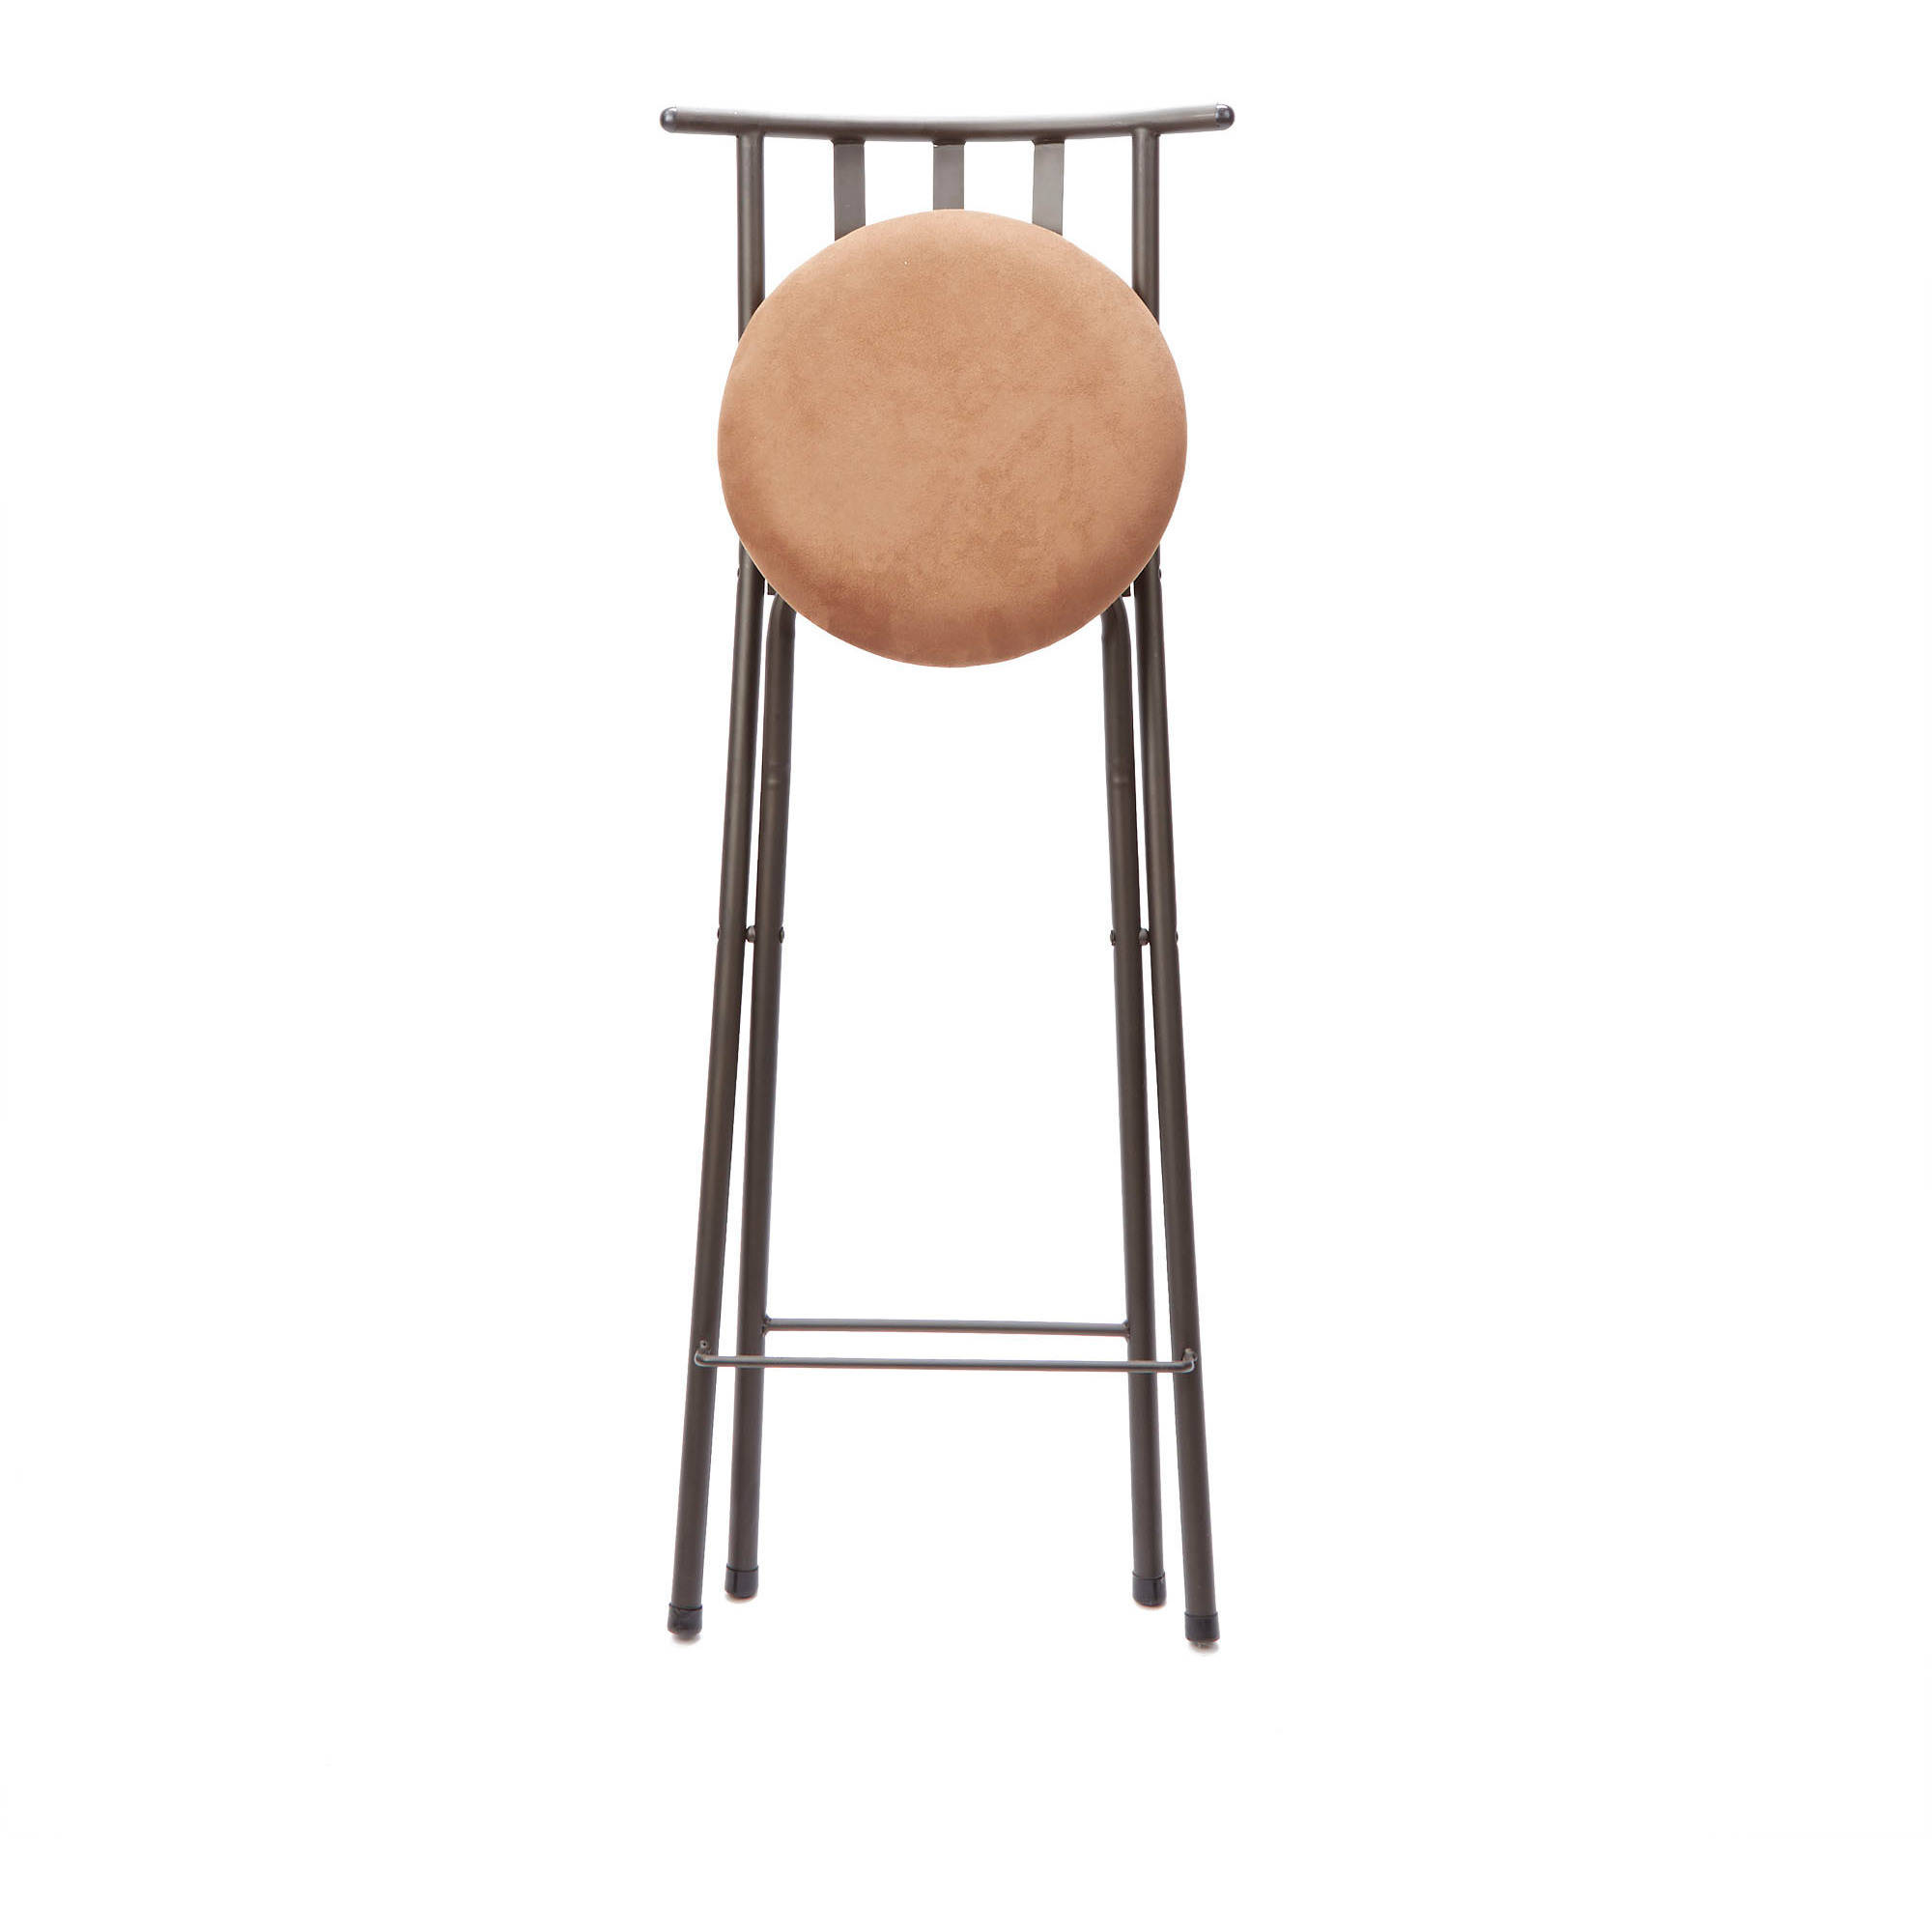 Super Mainstays Slat Back Folding 30 Bronze Bar Stool Multiple Colors Unemploymentrelief Wooden Chair Designs For Living Room Unemploymentrelieforg